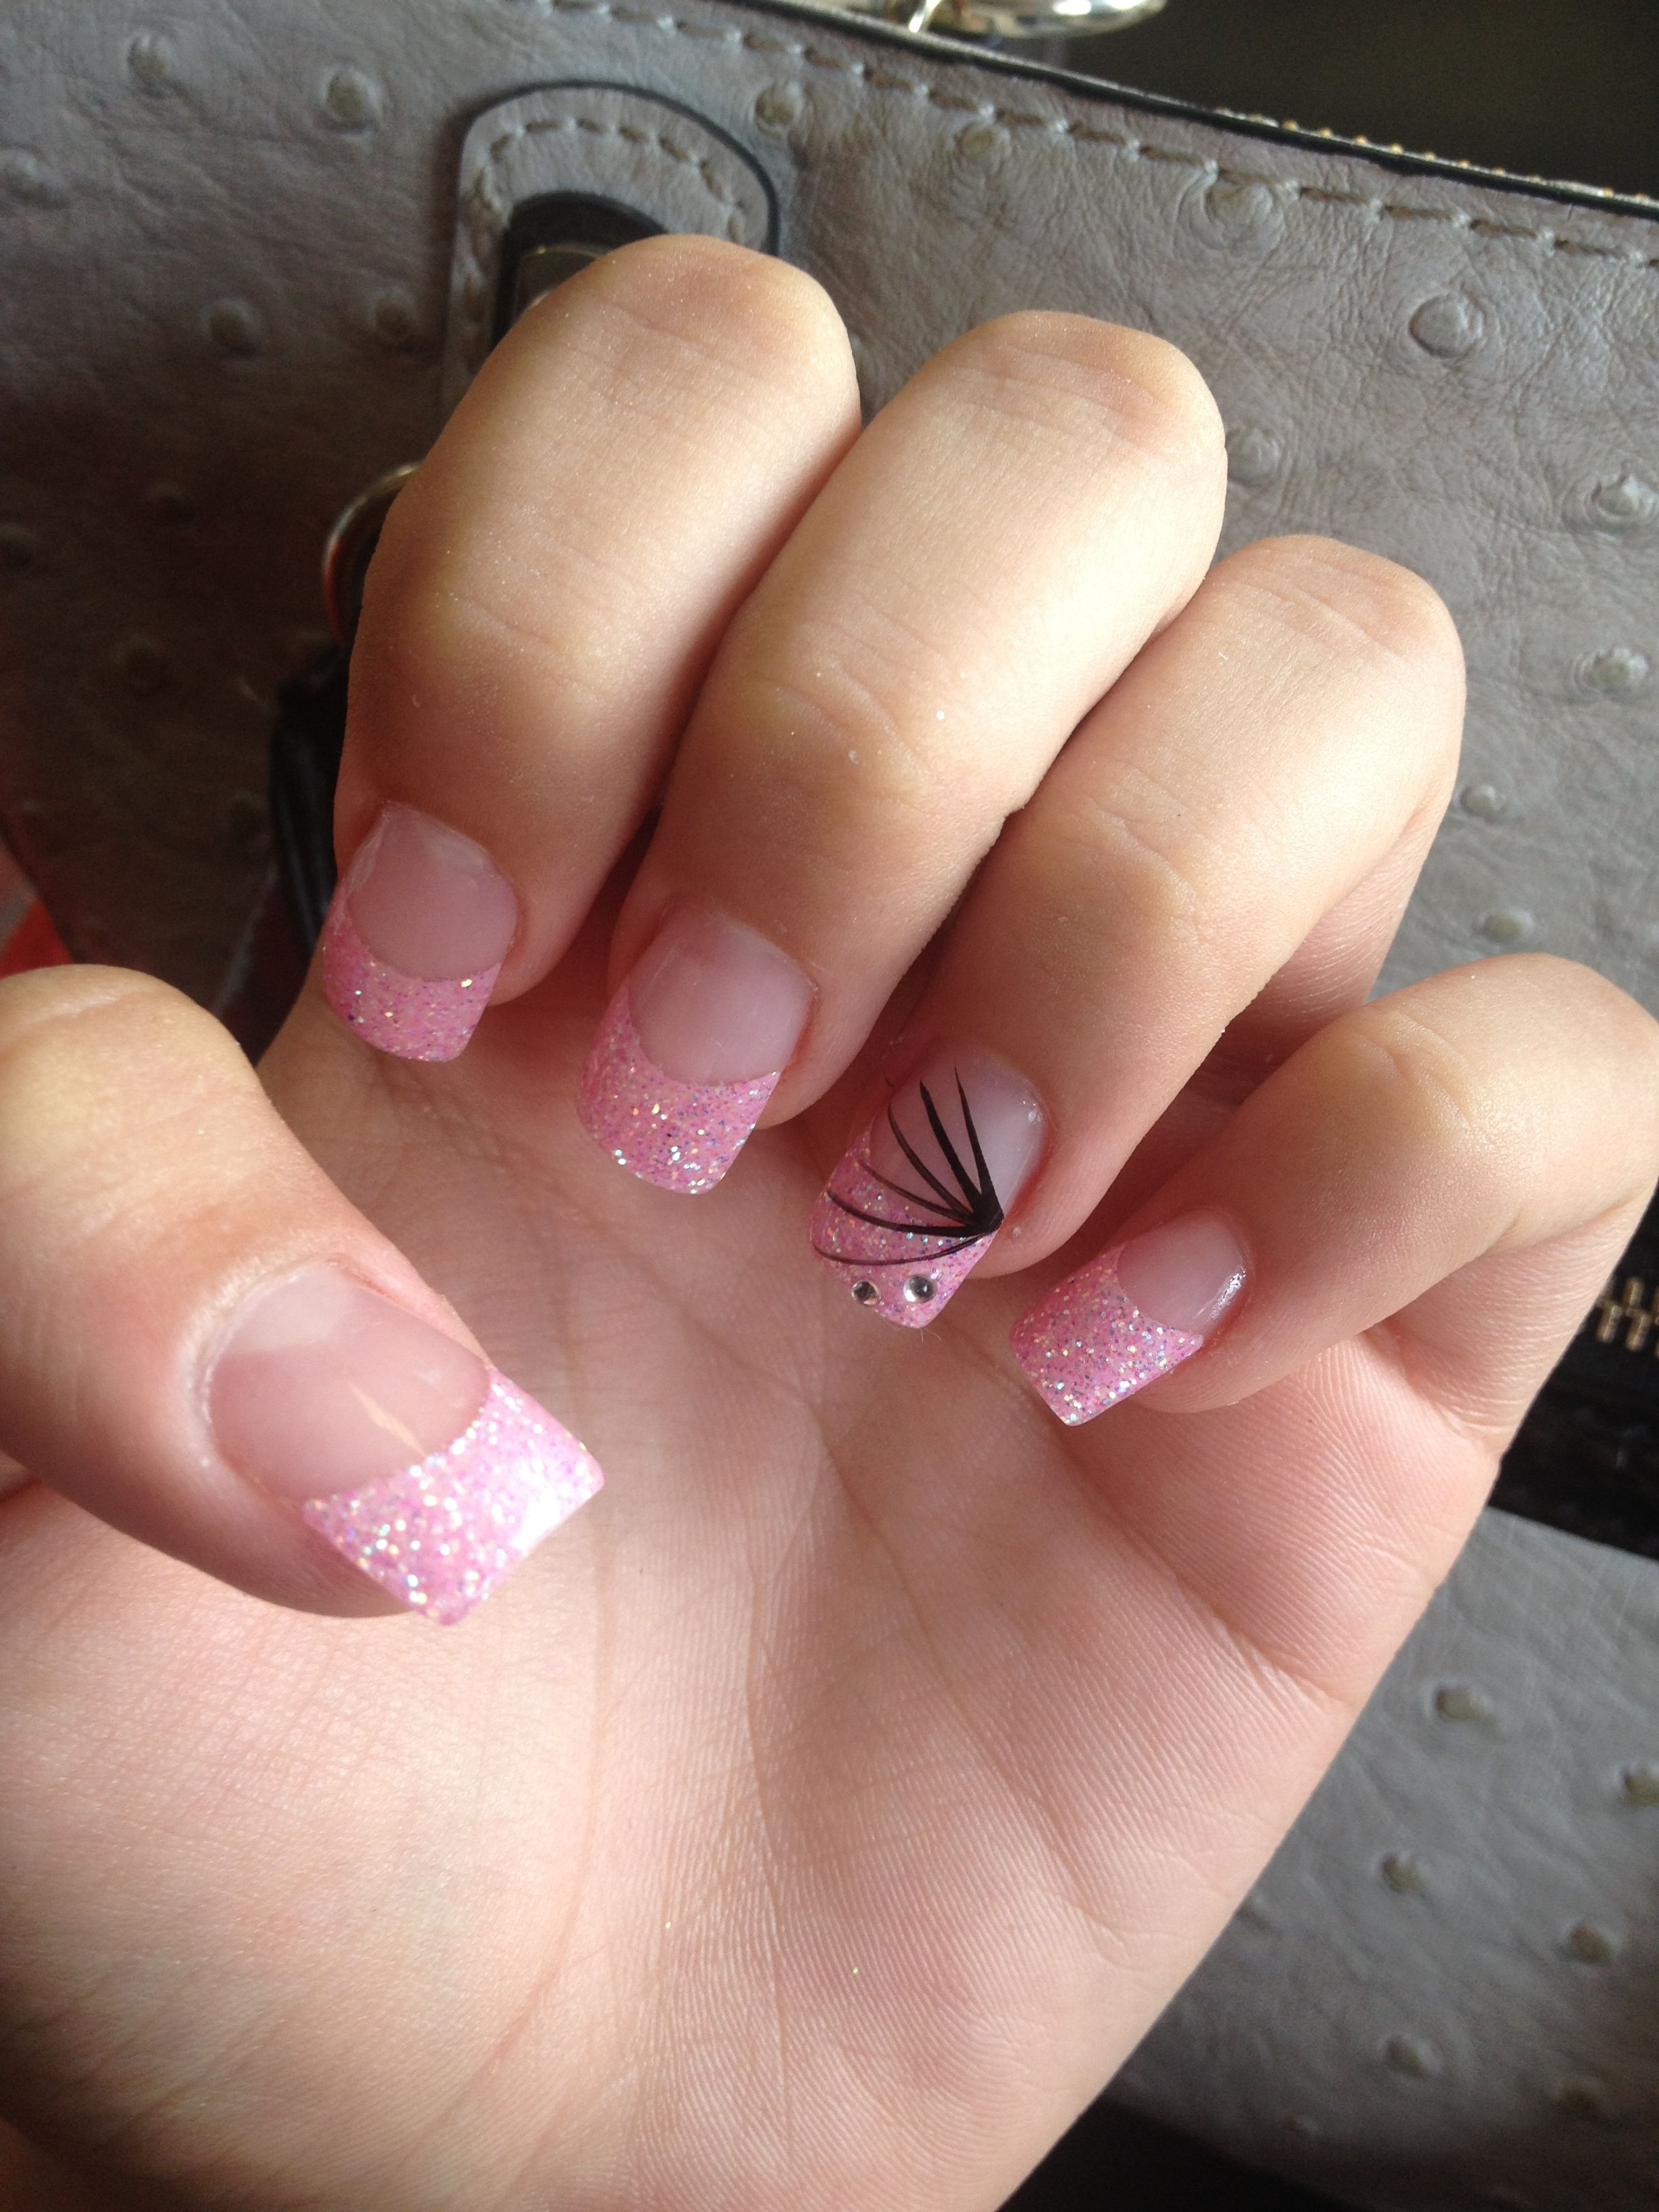 acrylic nails !! Pink and sparkly with a design and rhinestones